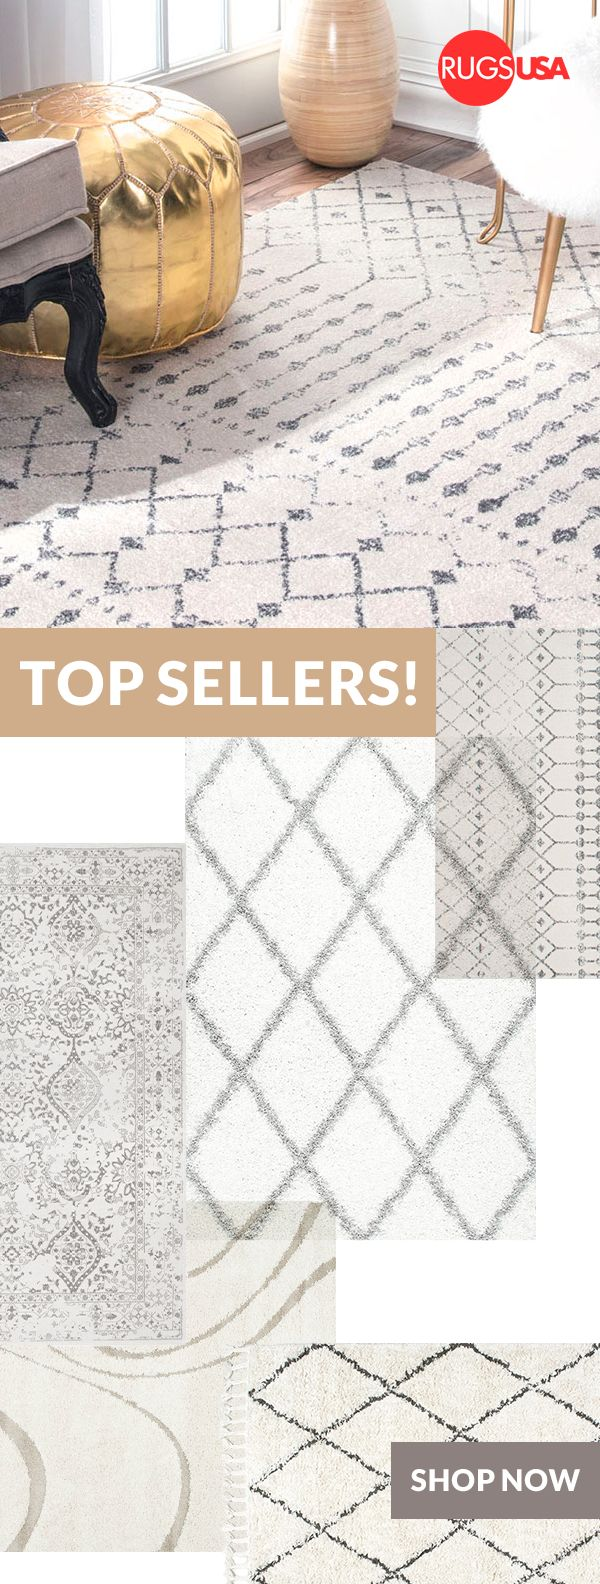 Tie any room together with stunning, high-quality rugs at rock-bottom prices. Choose from thousands of styles, sizes, colors, prints and textures to make your house feel like a home. Shop now at RugsUSA.com!